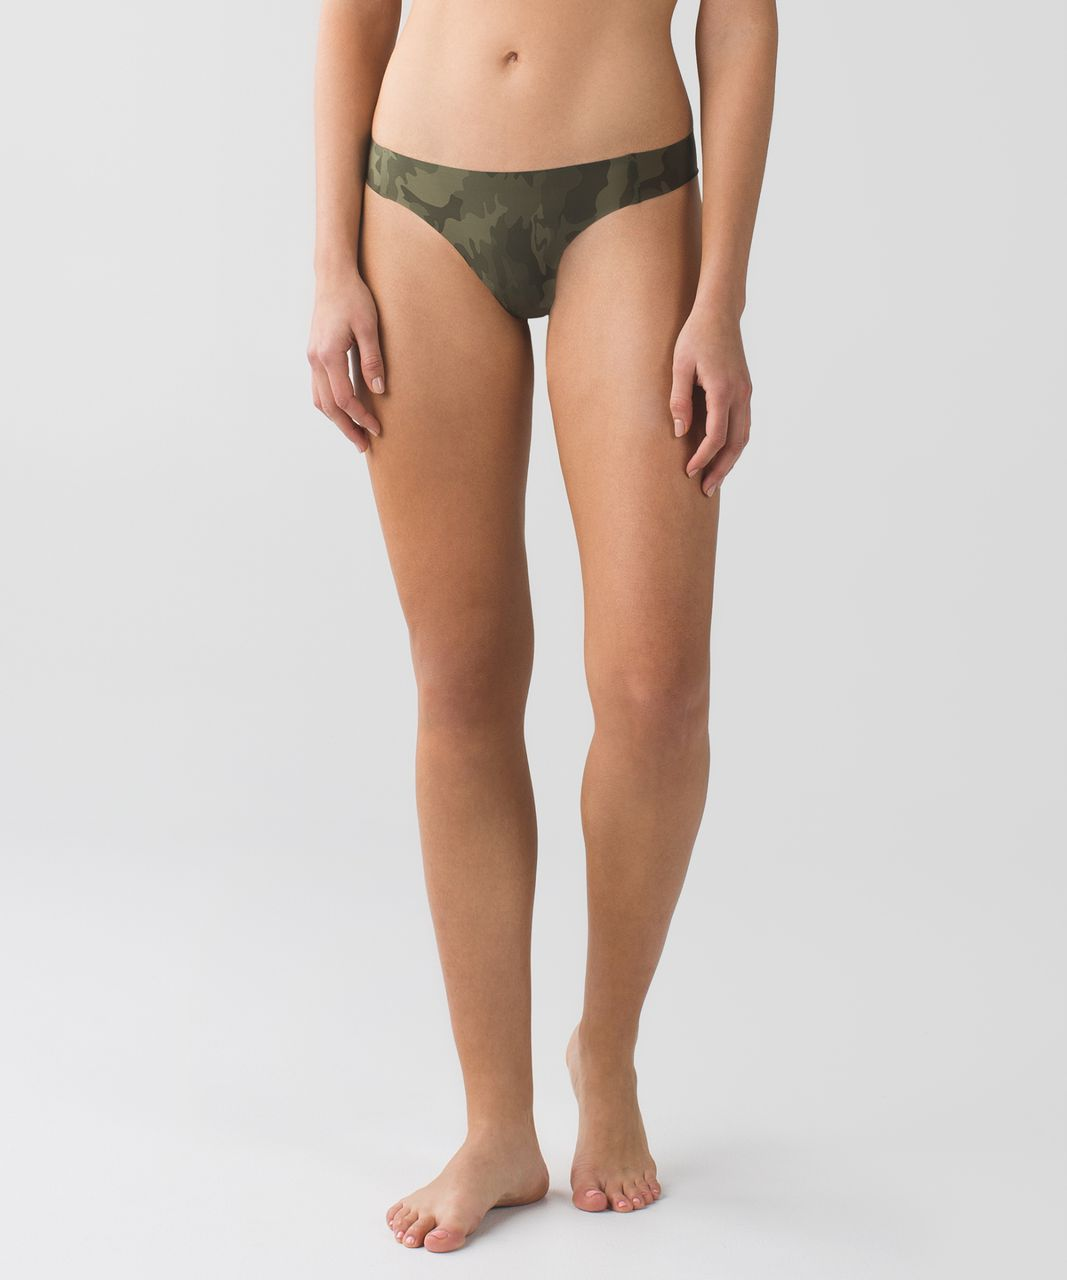 Lululemon Light As Air Thong - Savasana Camo 20cm Fatigue Green / Fatigue Green